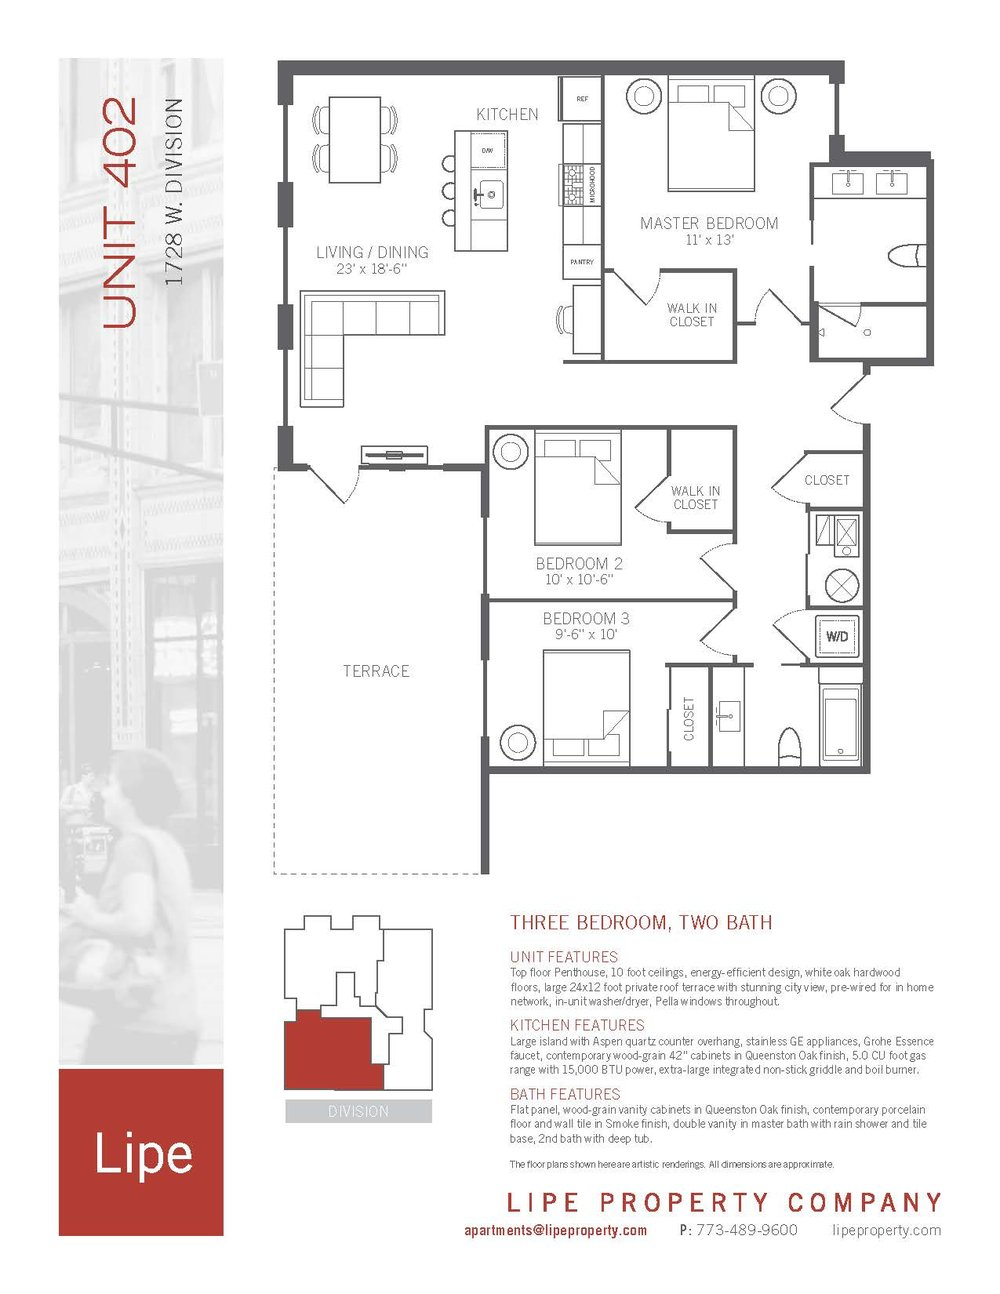 1728-West-Division-402-Floorplan-Chicago-apartment-for-rent.jpg